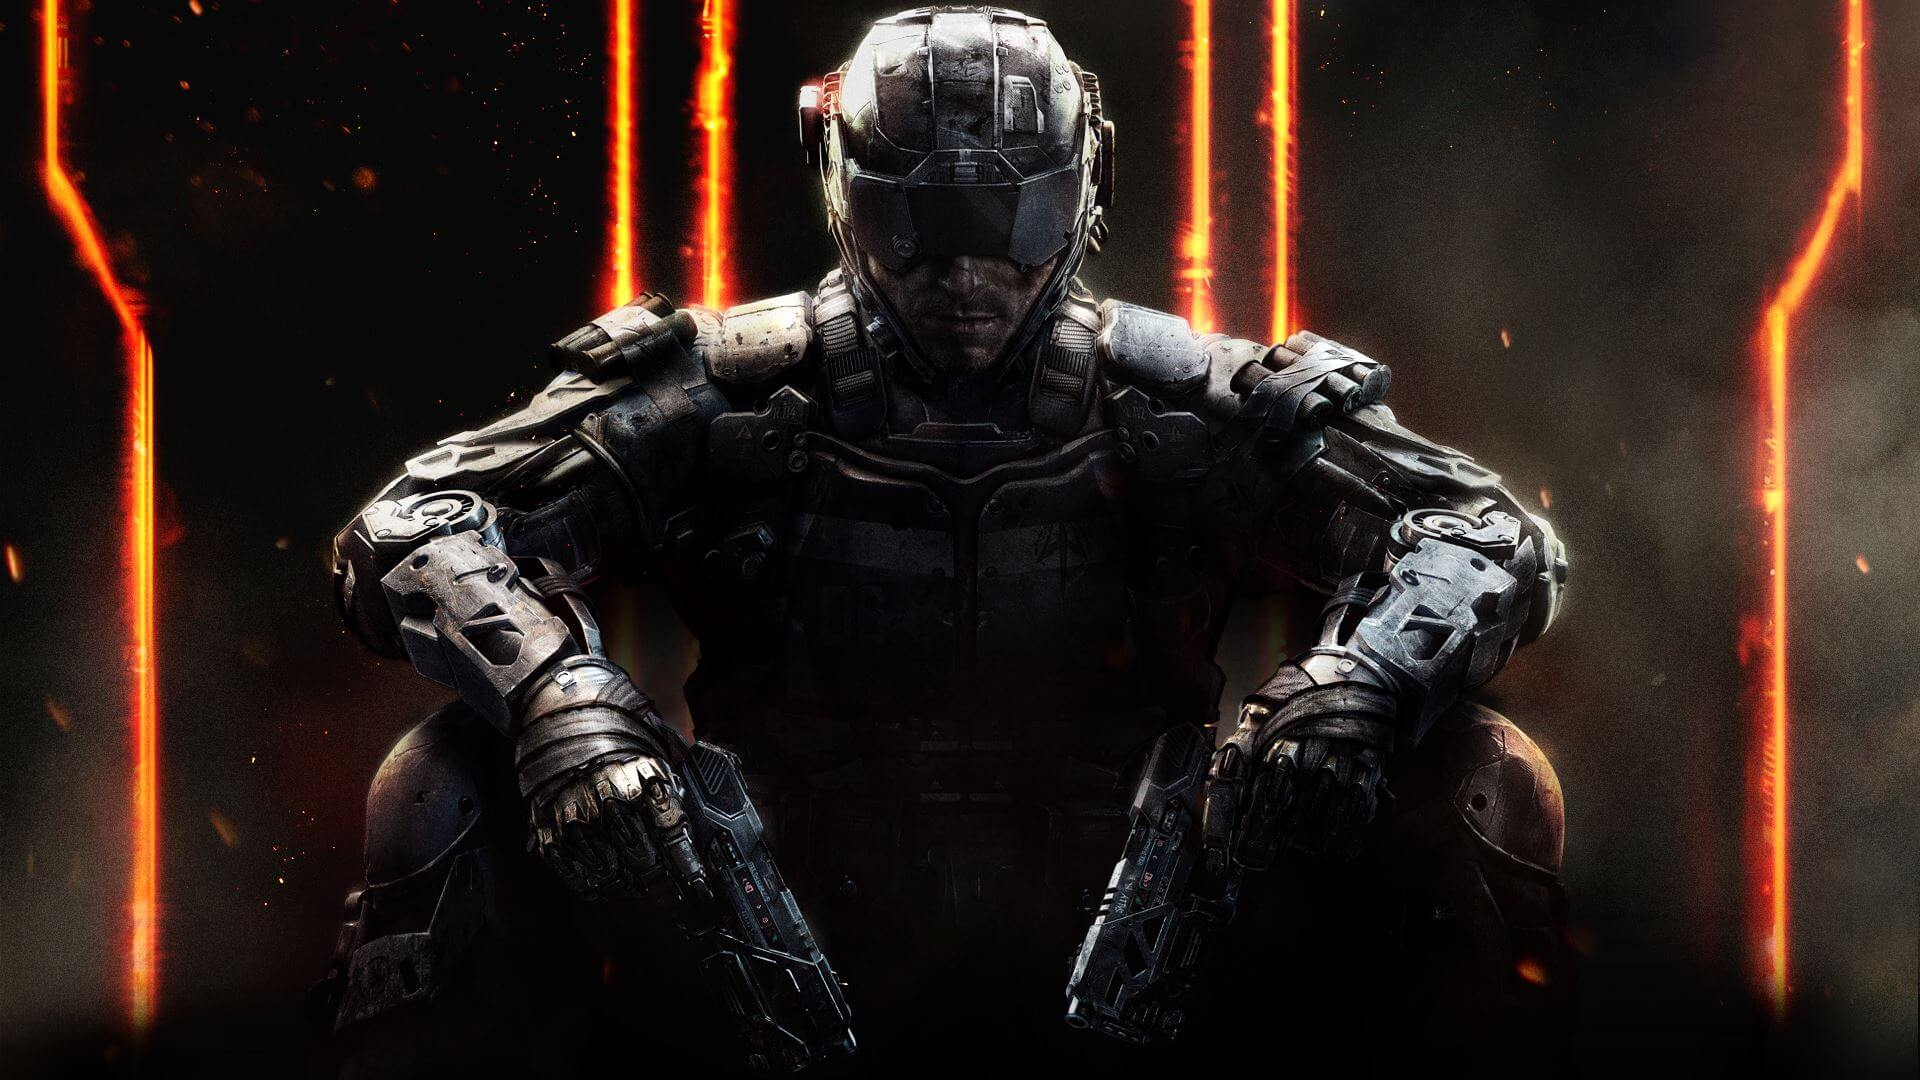 Black Ops 3 Campaign: Memento Style